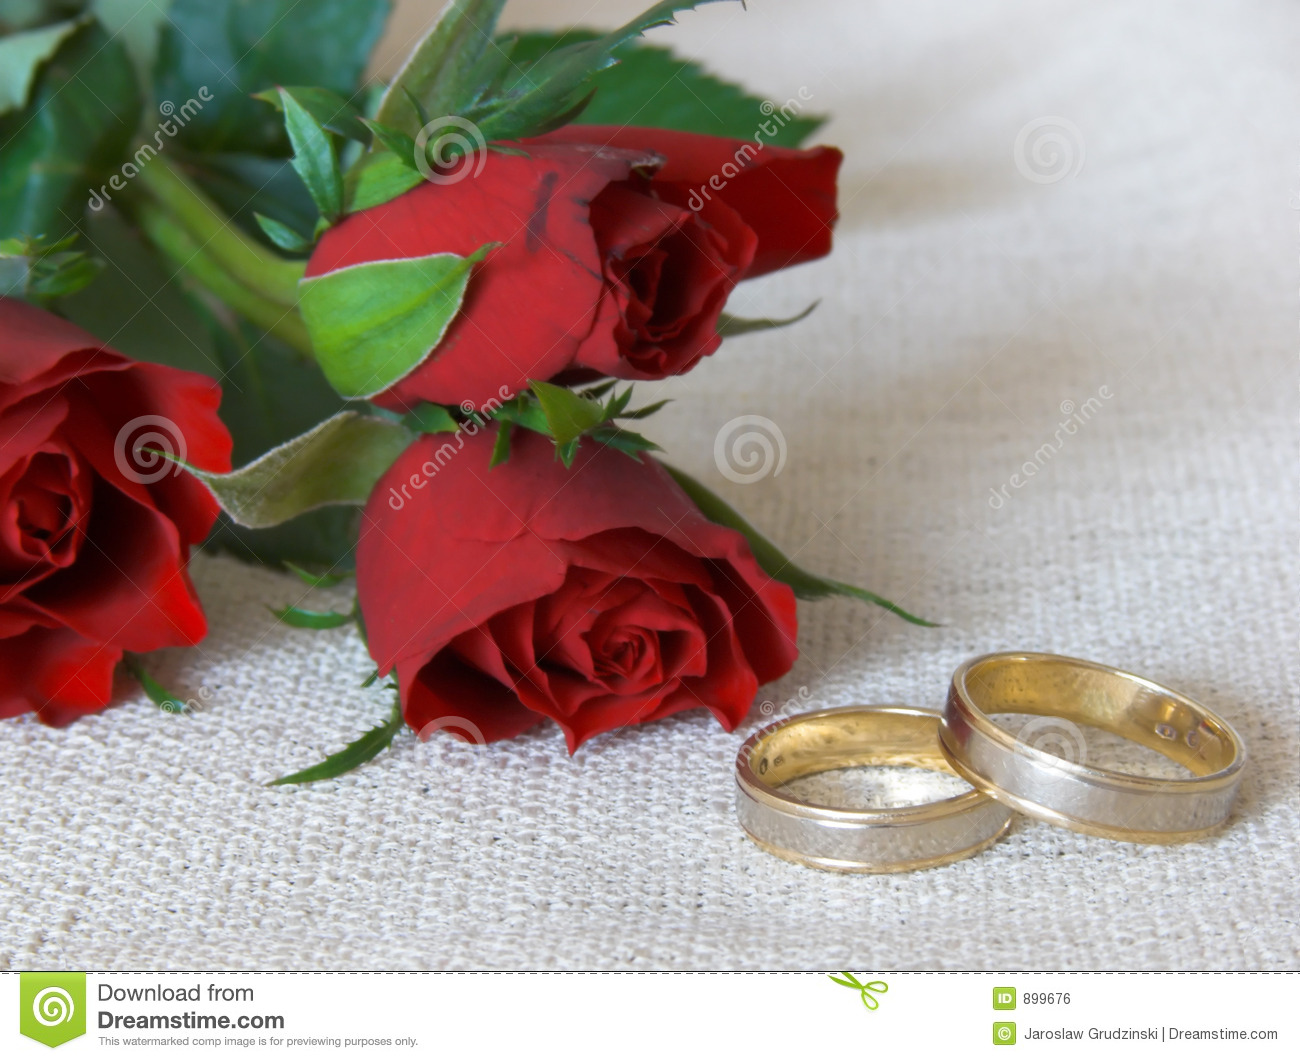 Wedding rings and roses stock photo Image of jewelery 899676